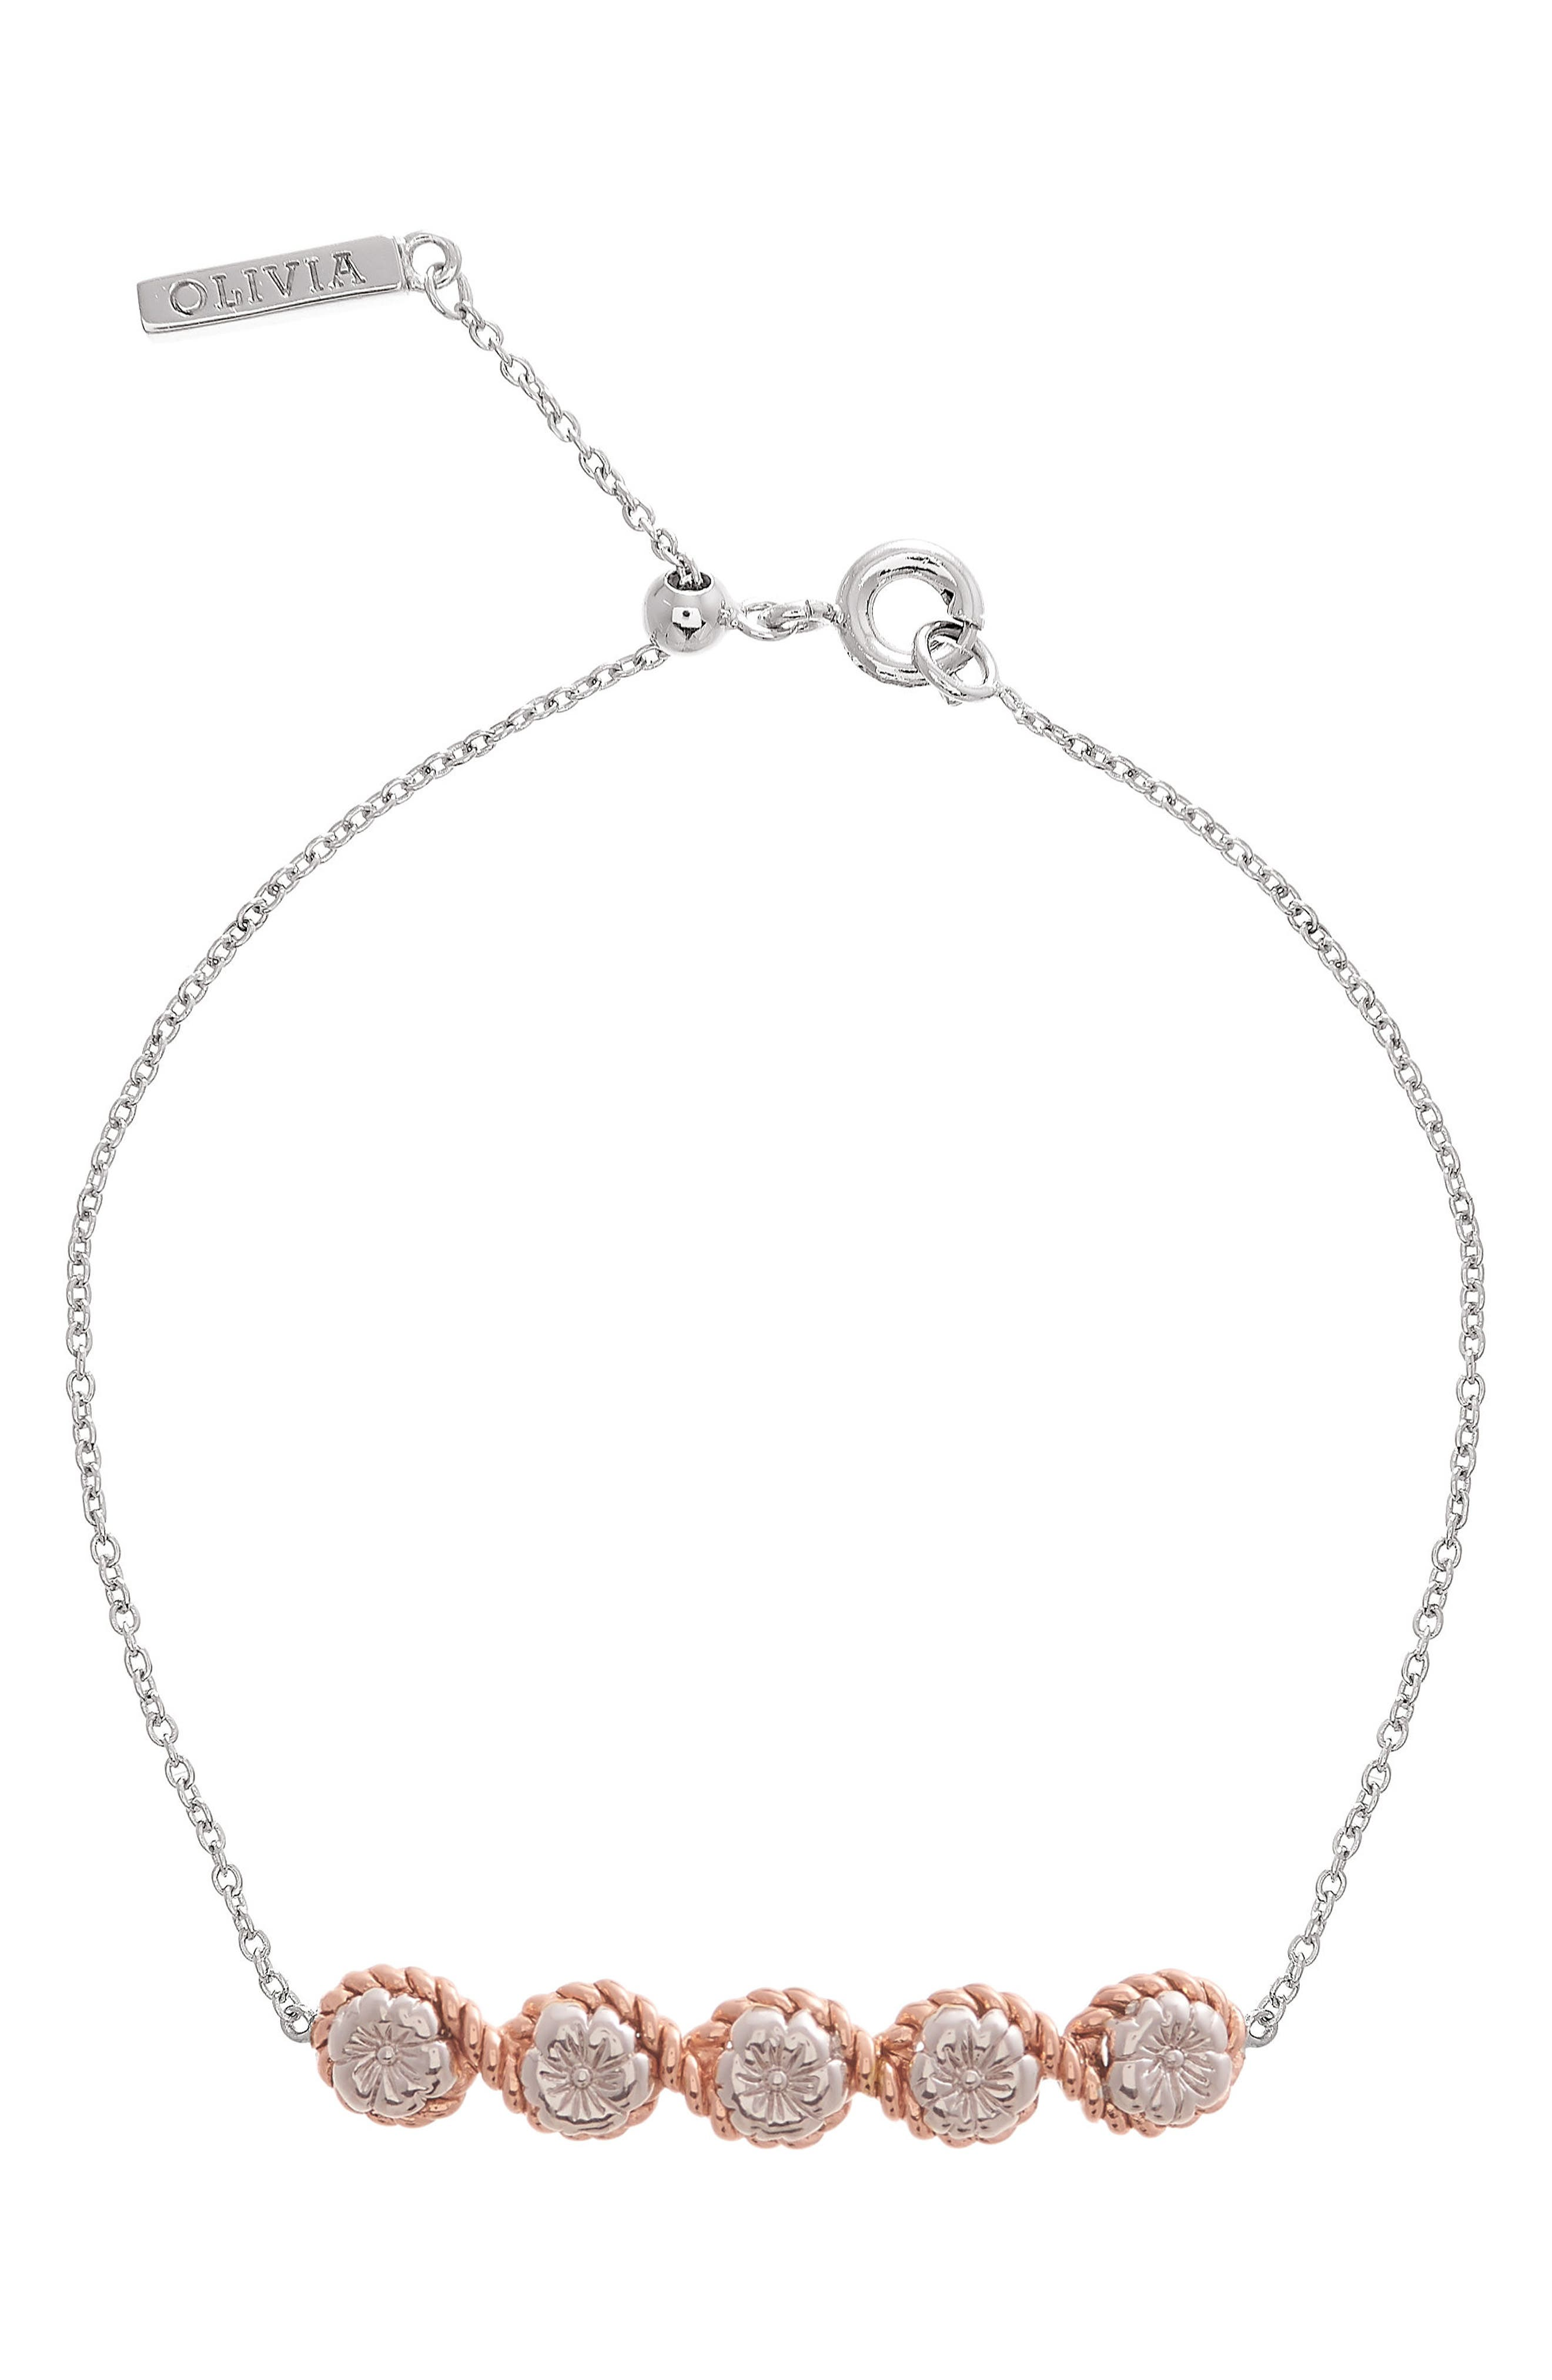 Flower Show Rope Chain Bracelet,                         Main,                         color, Silver / Rose Gold